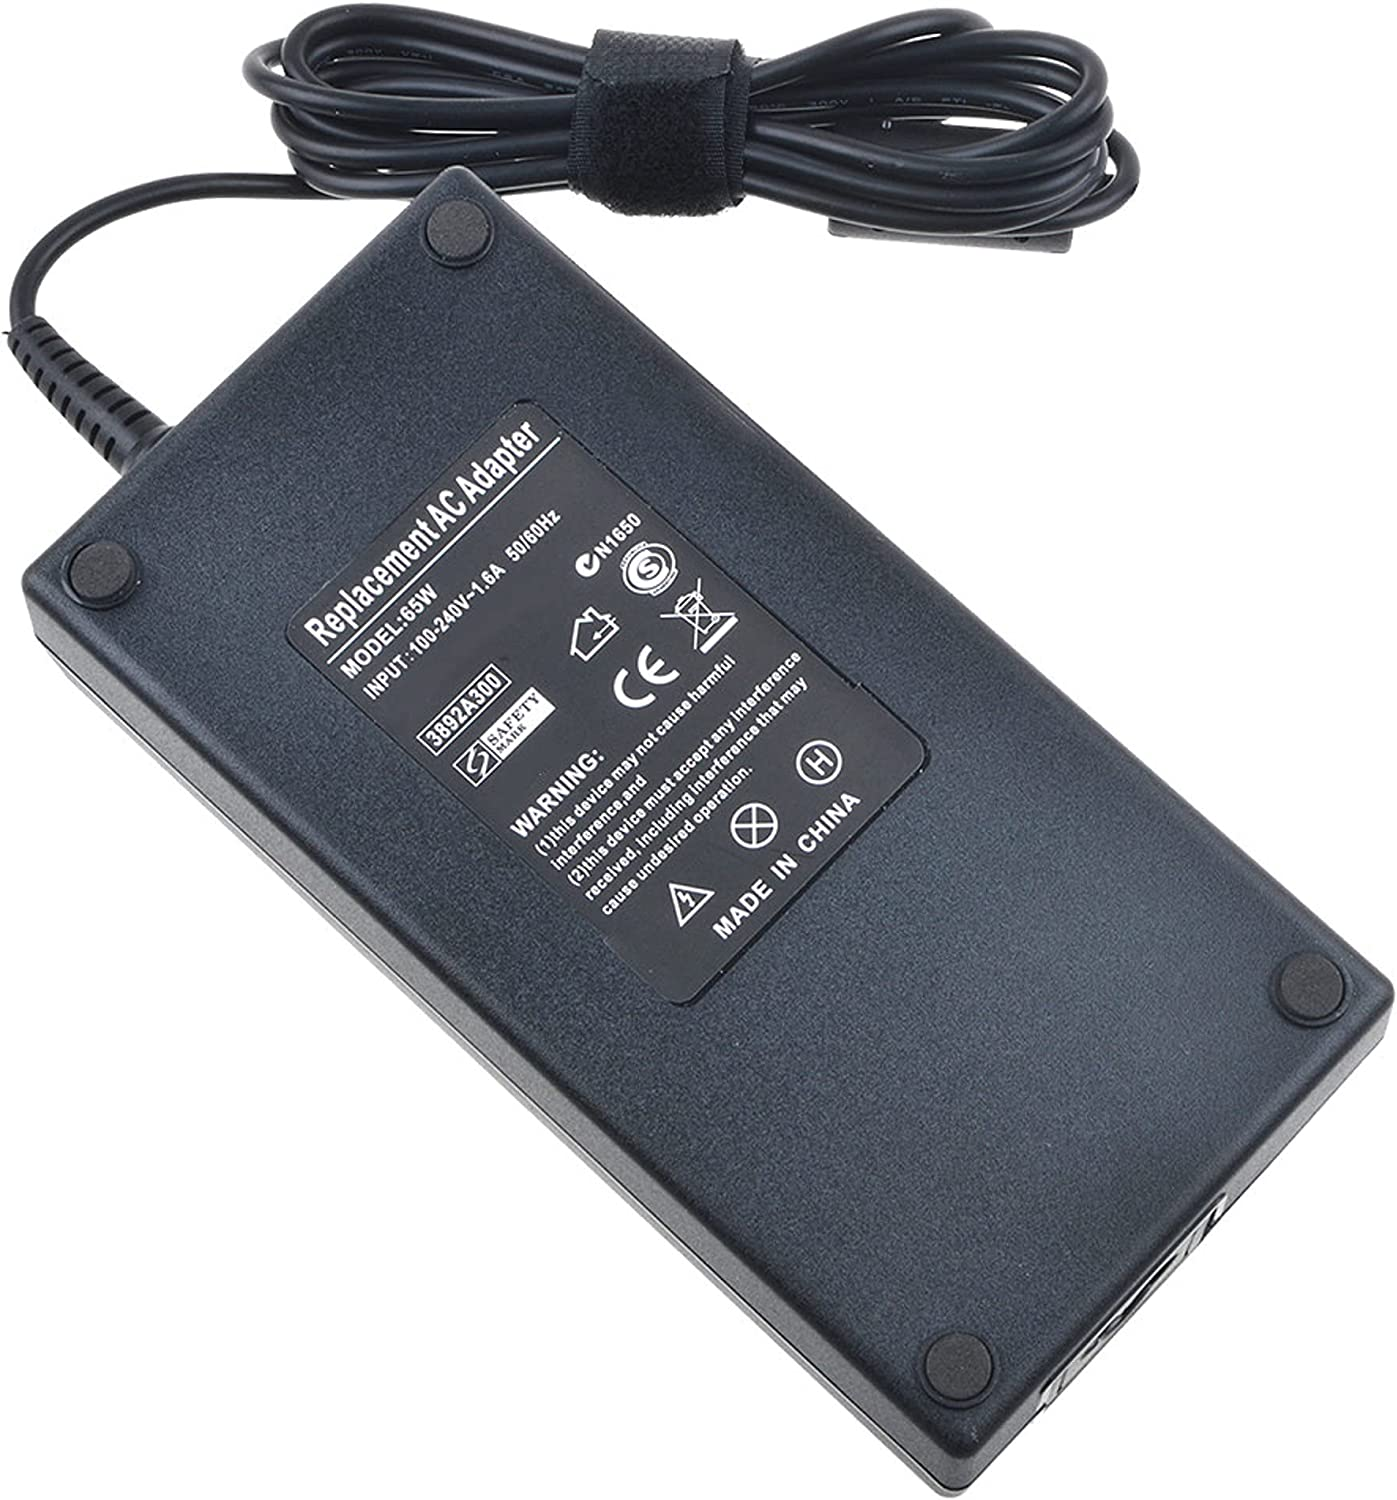 Digipartspower AC/DC Adapter for Acer Aspire Z1620 Z1620-UR31P All in One AIO Desktop PC Power Supply Cord Cable PS Charger Input: 100-240 VAC 50/60Hz Worldwide Voltage Use Mains PSU